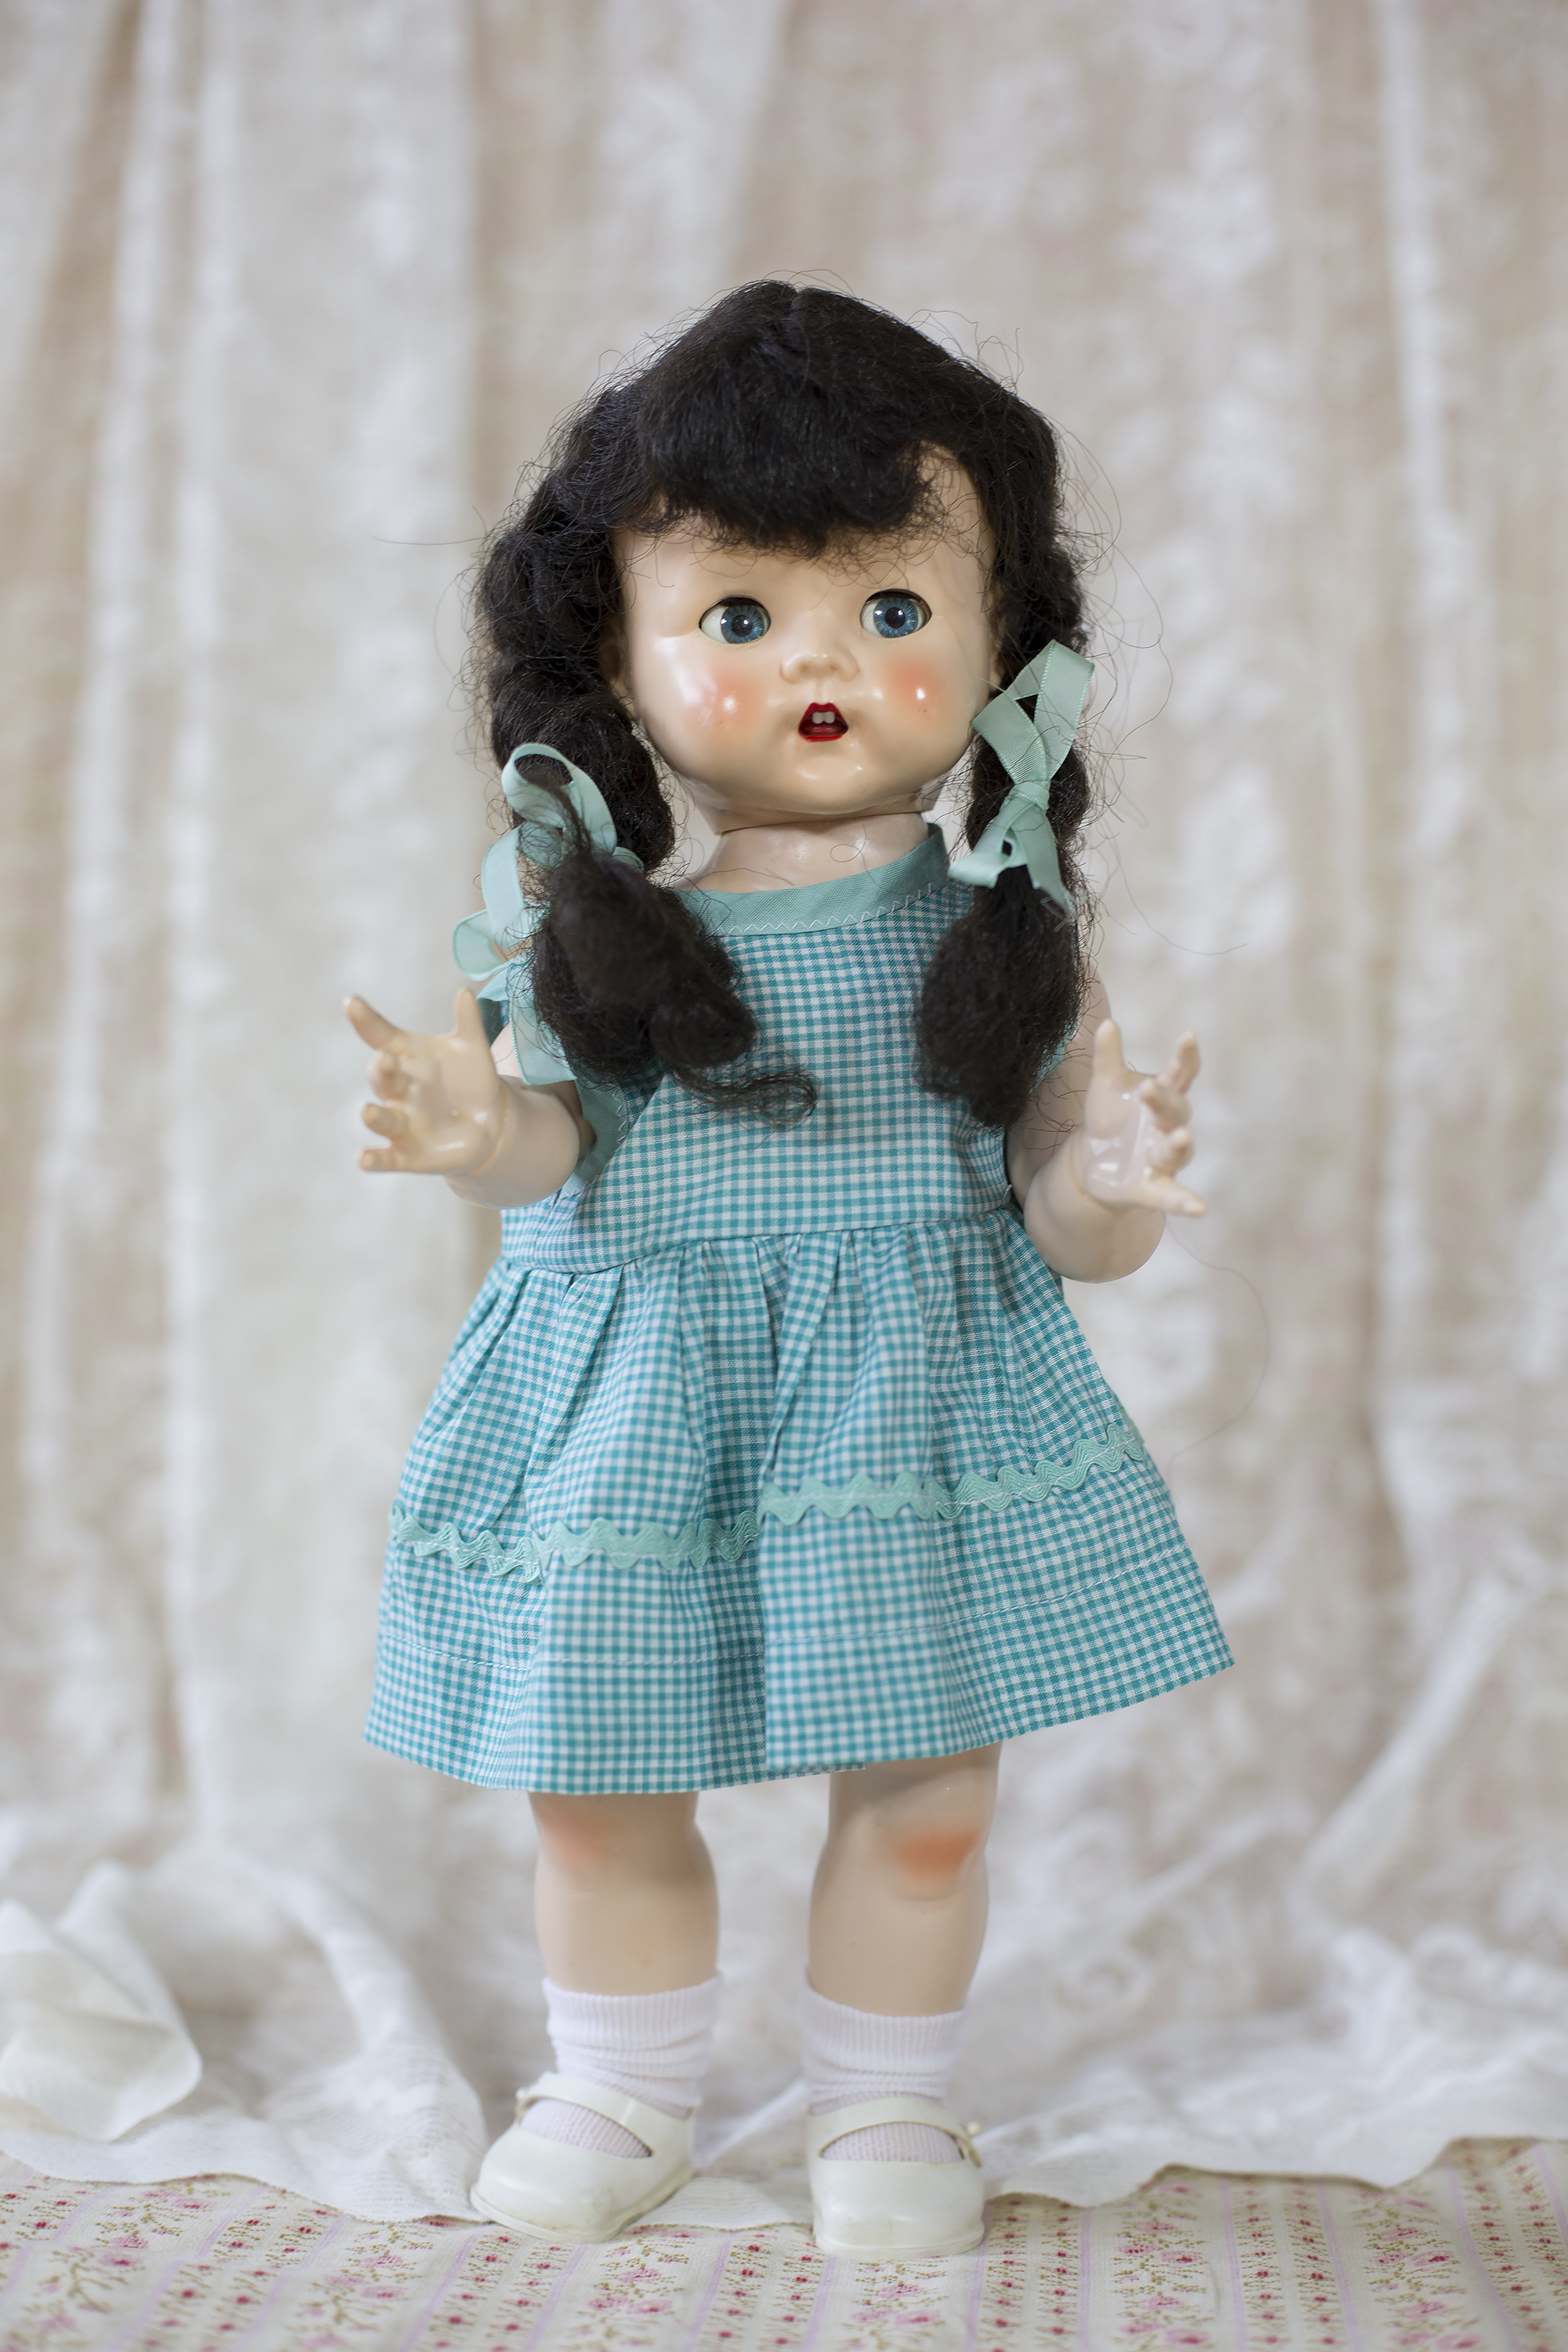 """English pedigree doll 16"""" with open mouth and teeth. In original wig with plaits. Purchased on Trade Me in April 2010."""